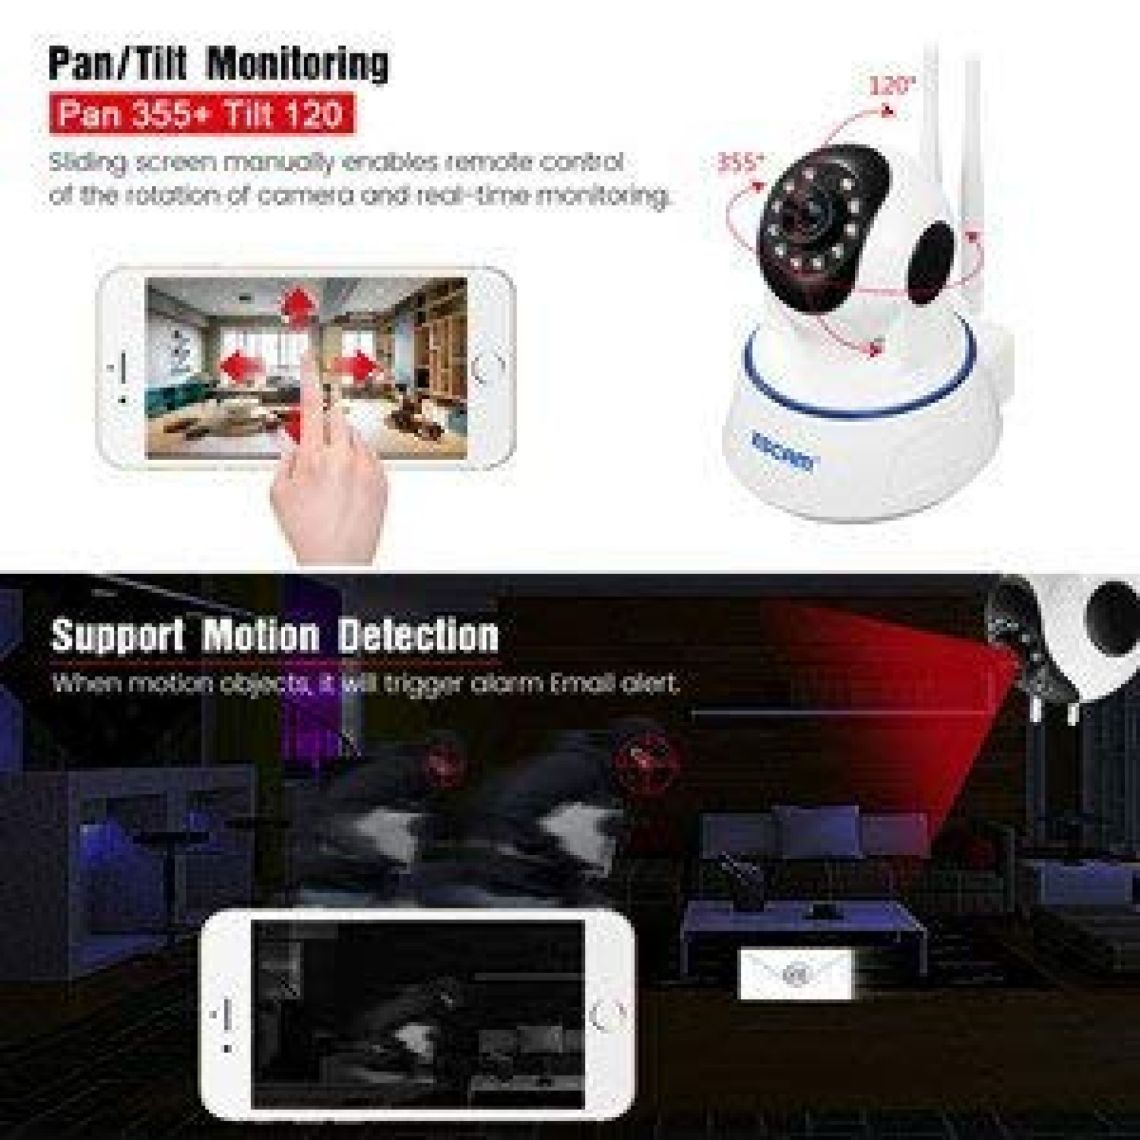 Amazon.com : HD IP Camera, EIVOTOR 1080P Wireless Wifi Security Cam with Pan/Tilt Motion Detection Recording, Surveillance Security Alarm System with Night Vision for Baby Pet Home Monitor : Camera & Photo